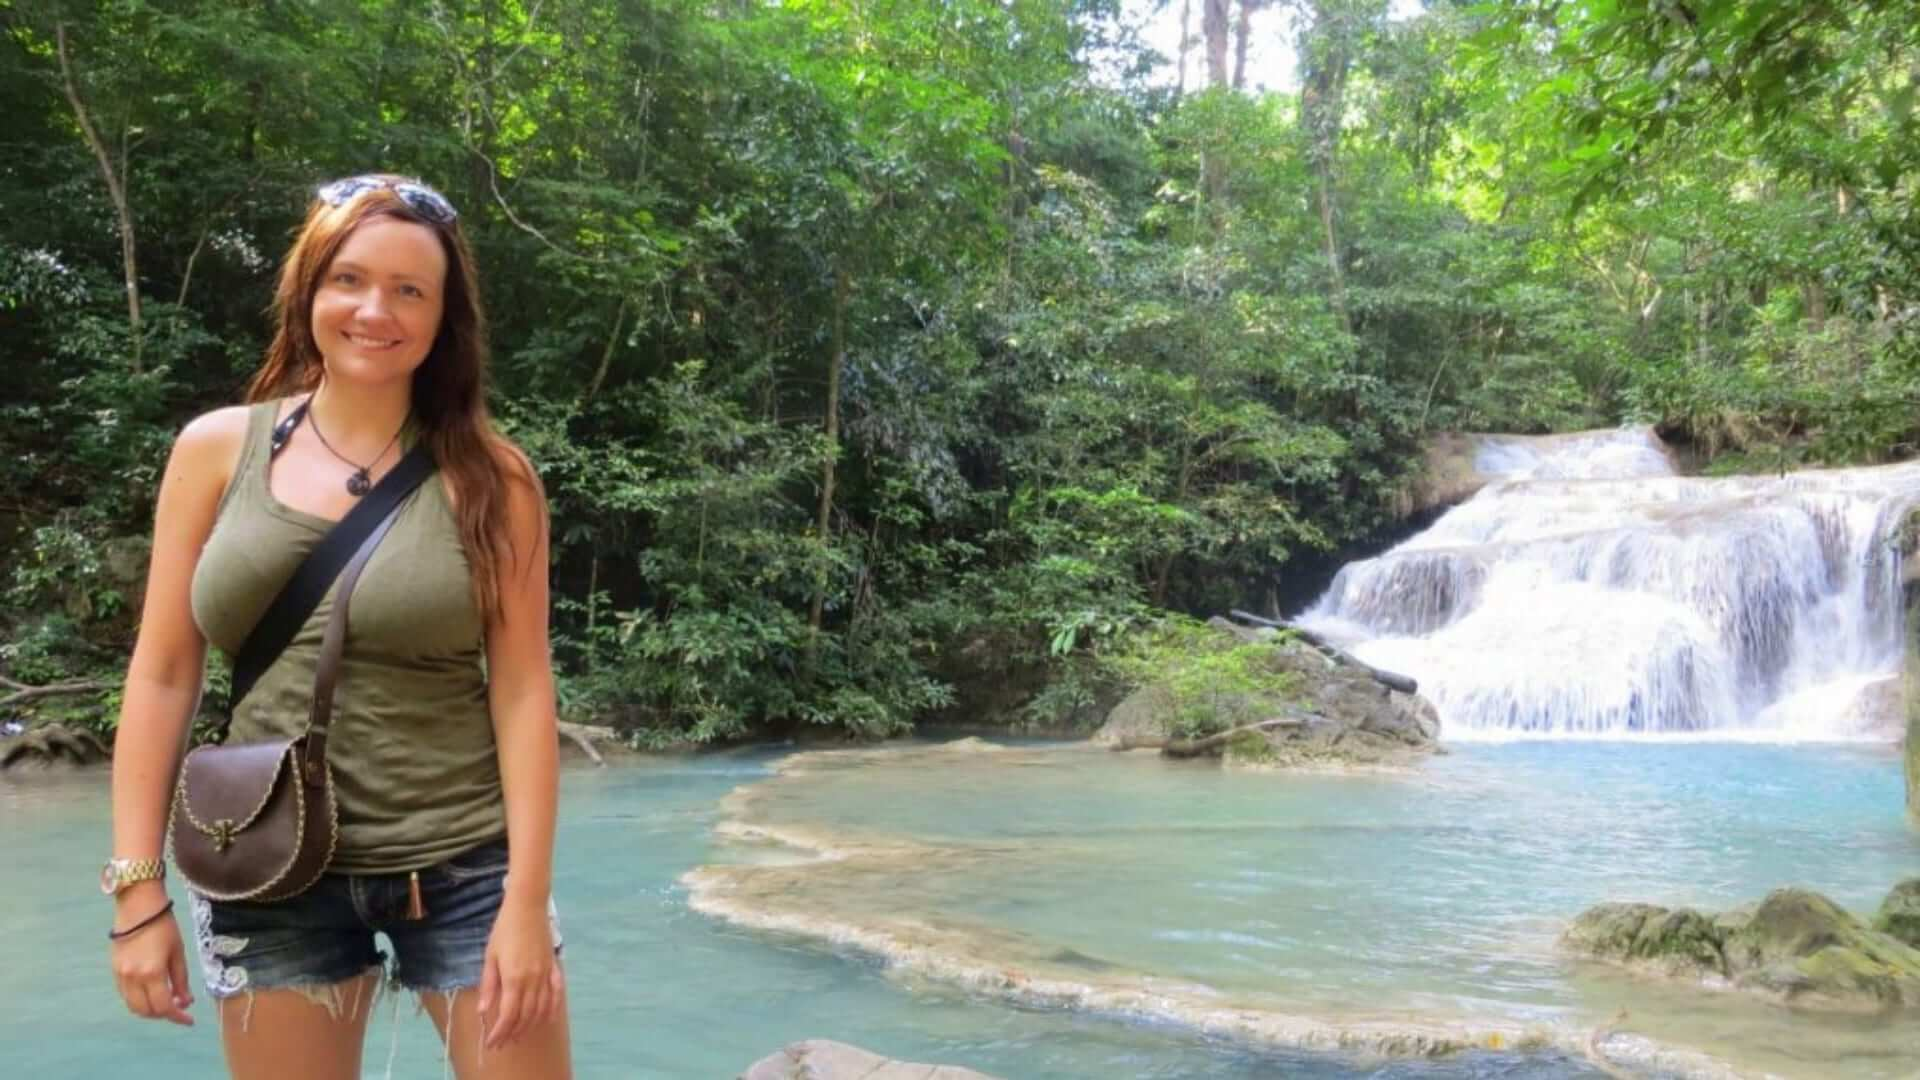 A girl is standing in front of a waterfall in Thailand.